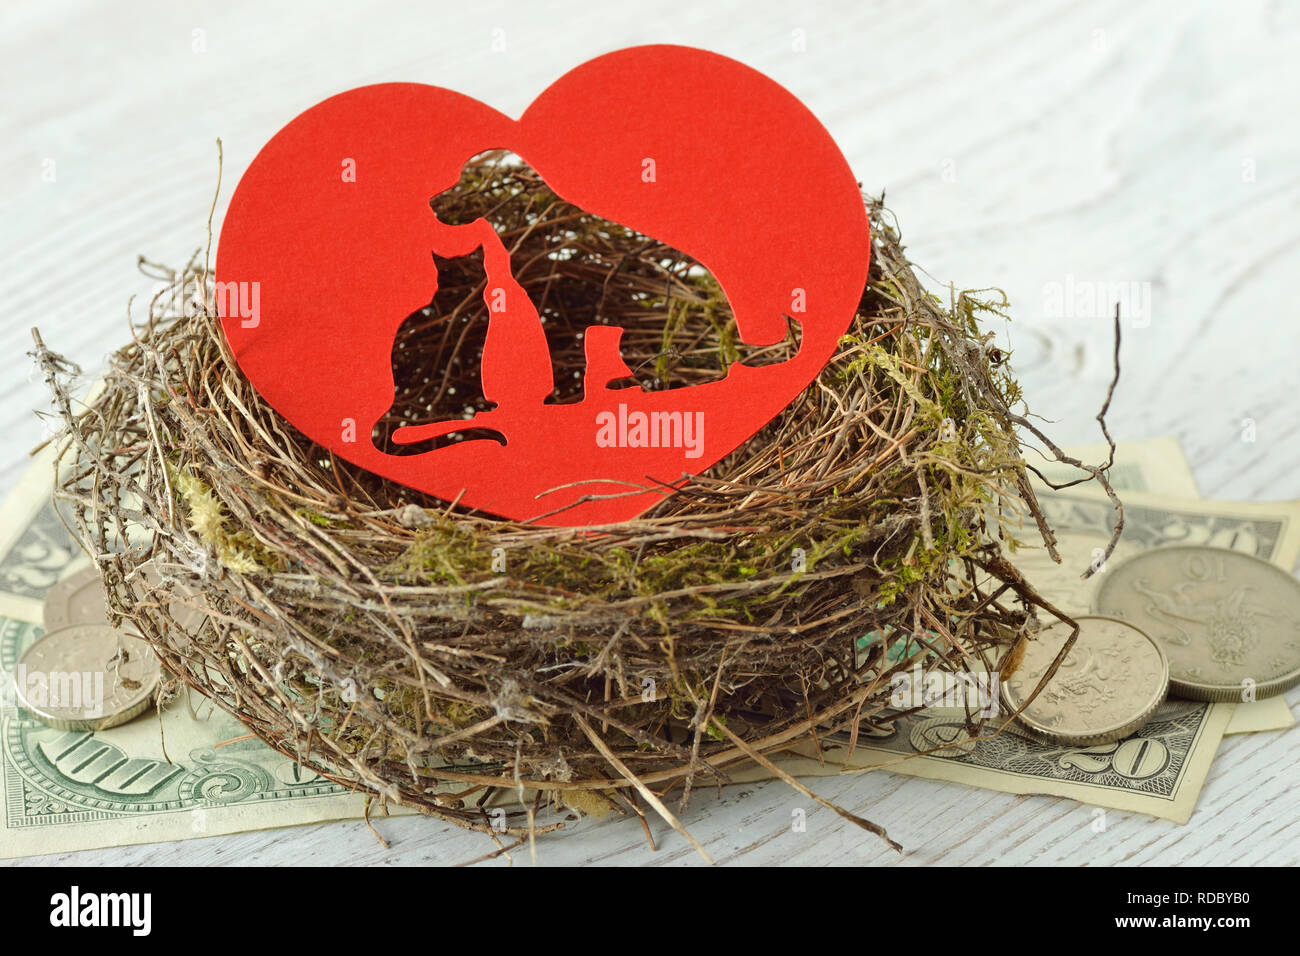 Cat and dog silhouette cut out in paper heart in a nest on money - Concept of pet shelter donations - Stock Image